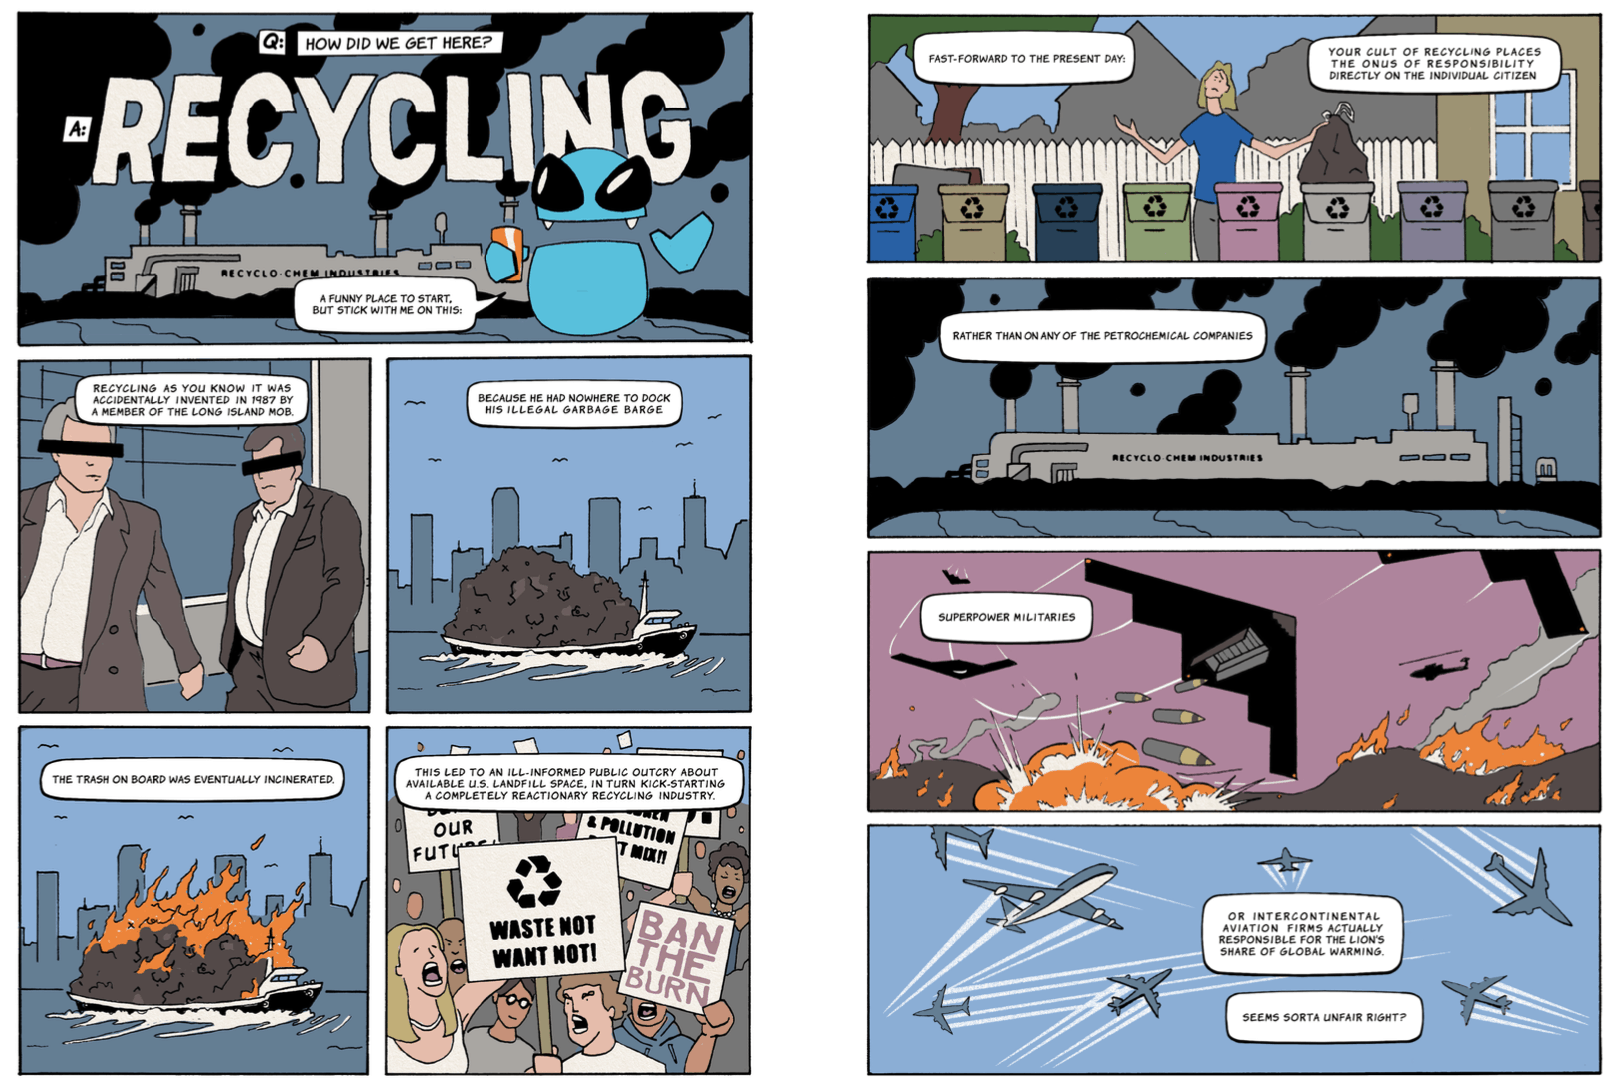 how did we get here interior comic page about recycling